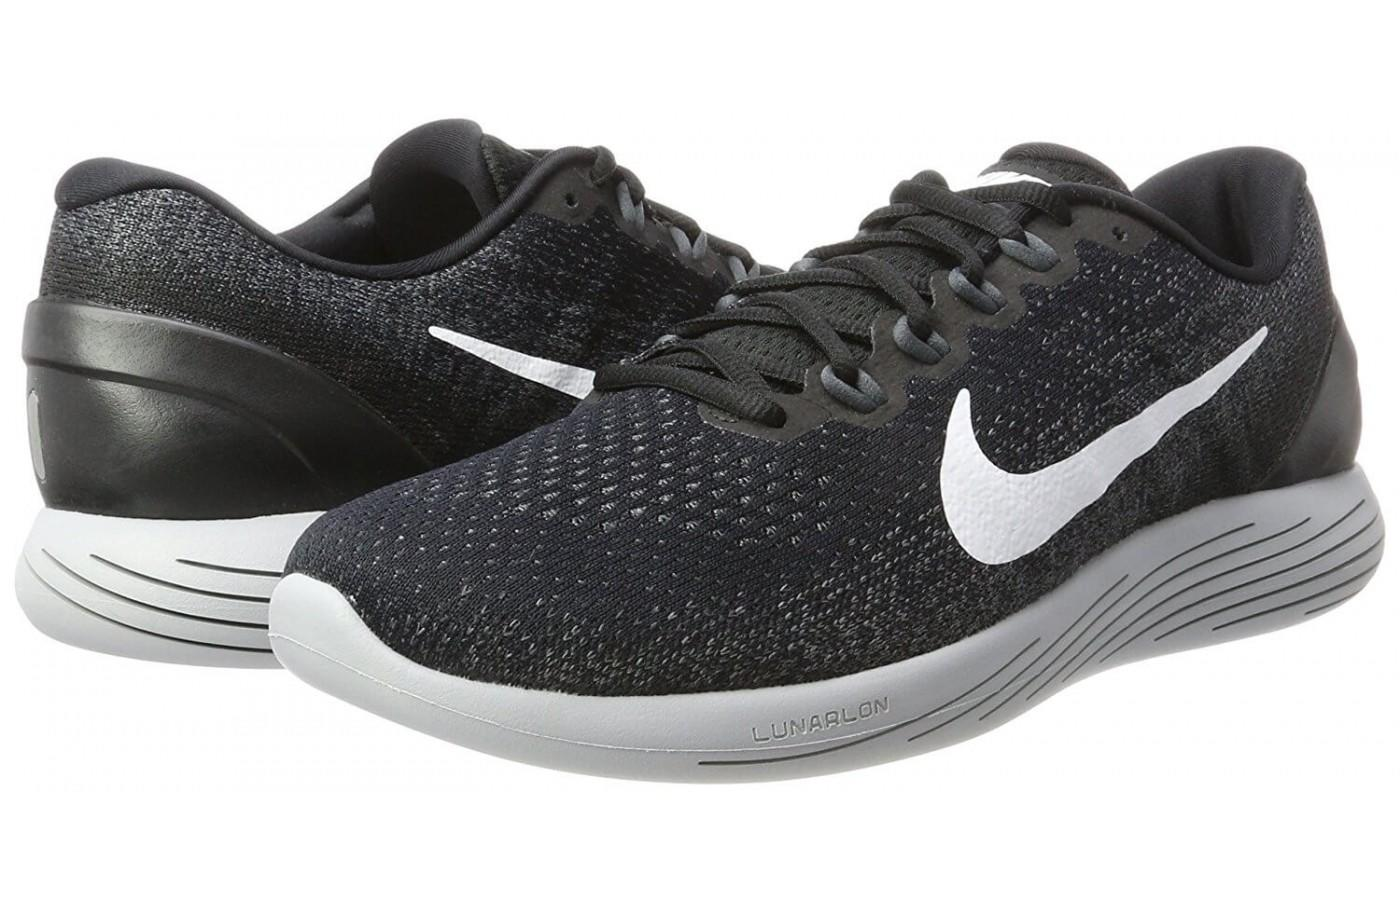 ... the Nike Lunarglide 9 is a comfortable stability shoe that both  overpronators and neutral runners can 593dc1c6c19c